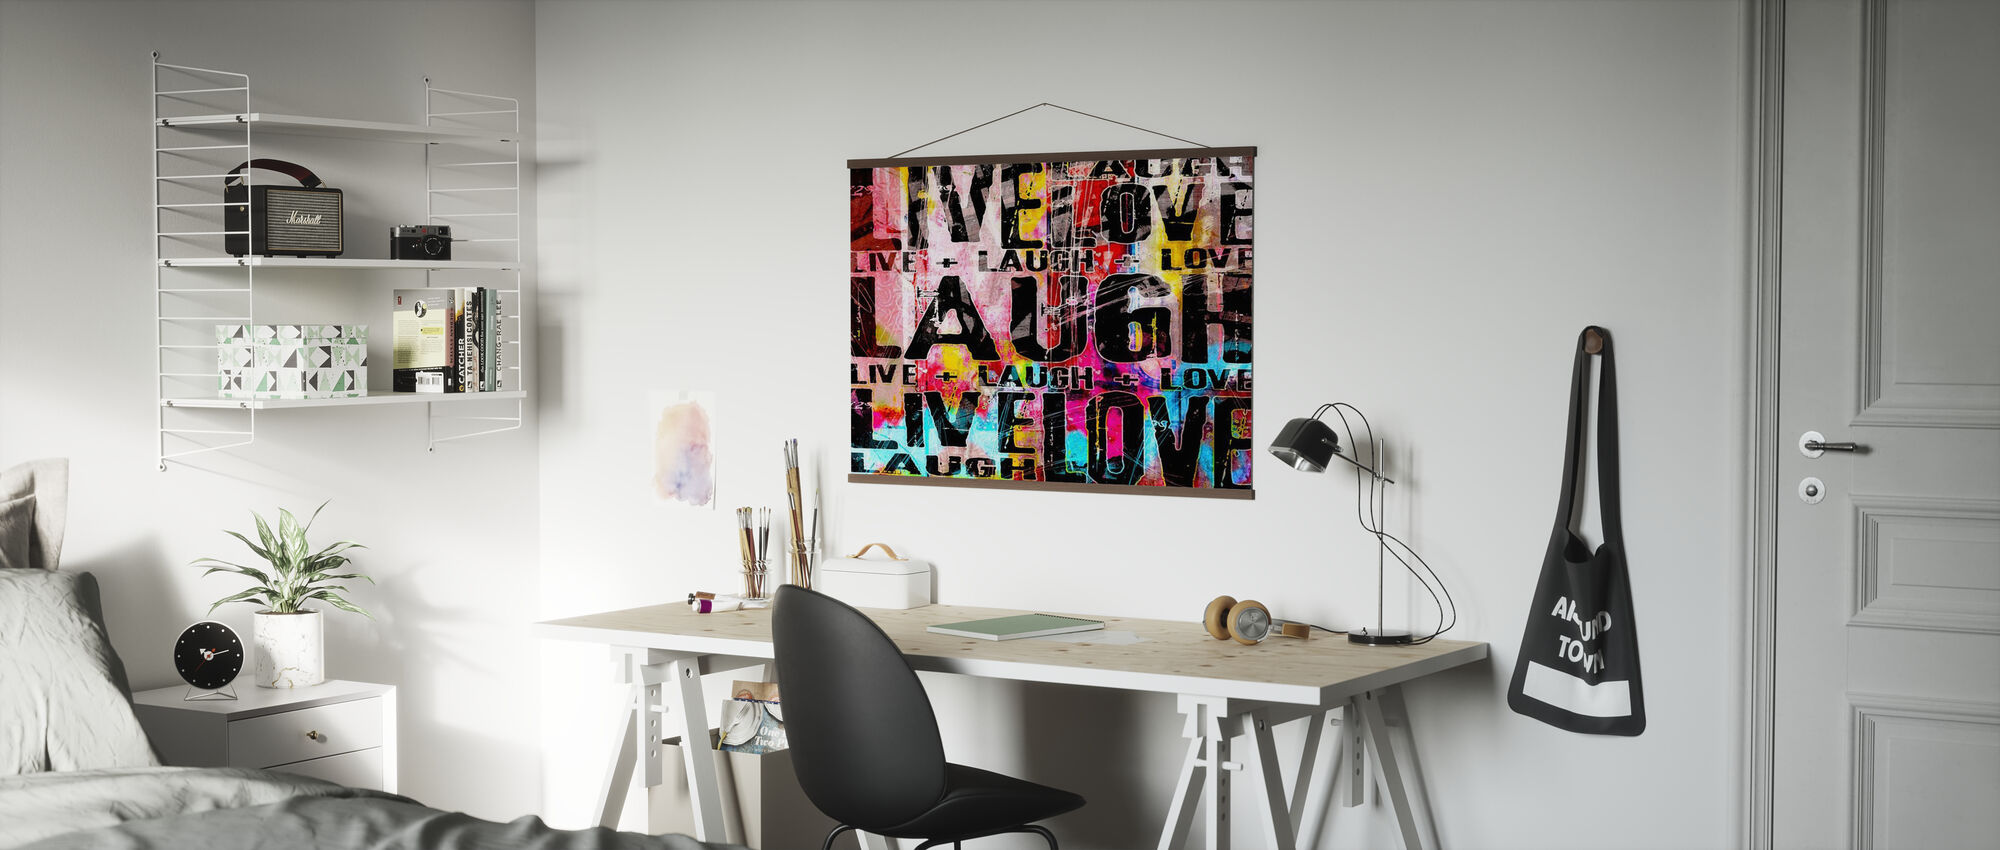 Live Laugh Love - Poster - Office